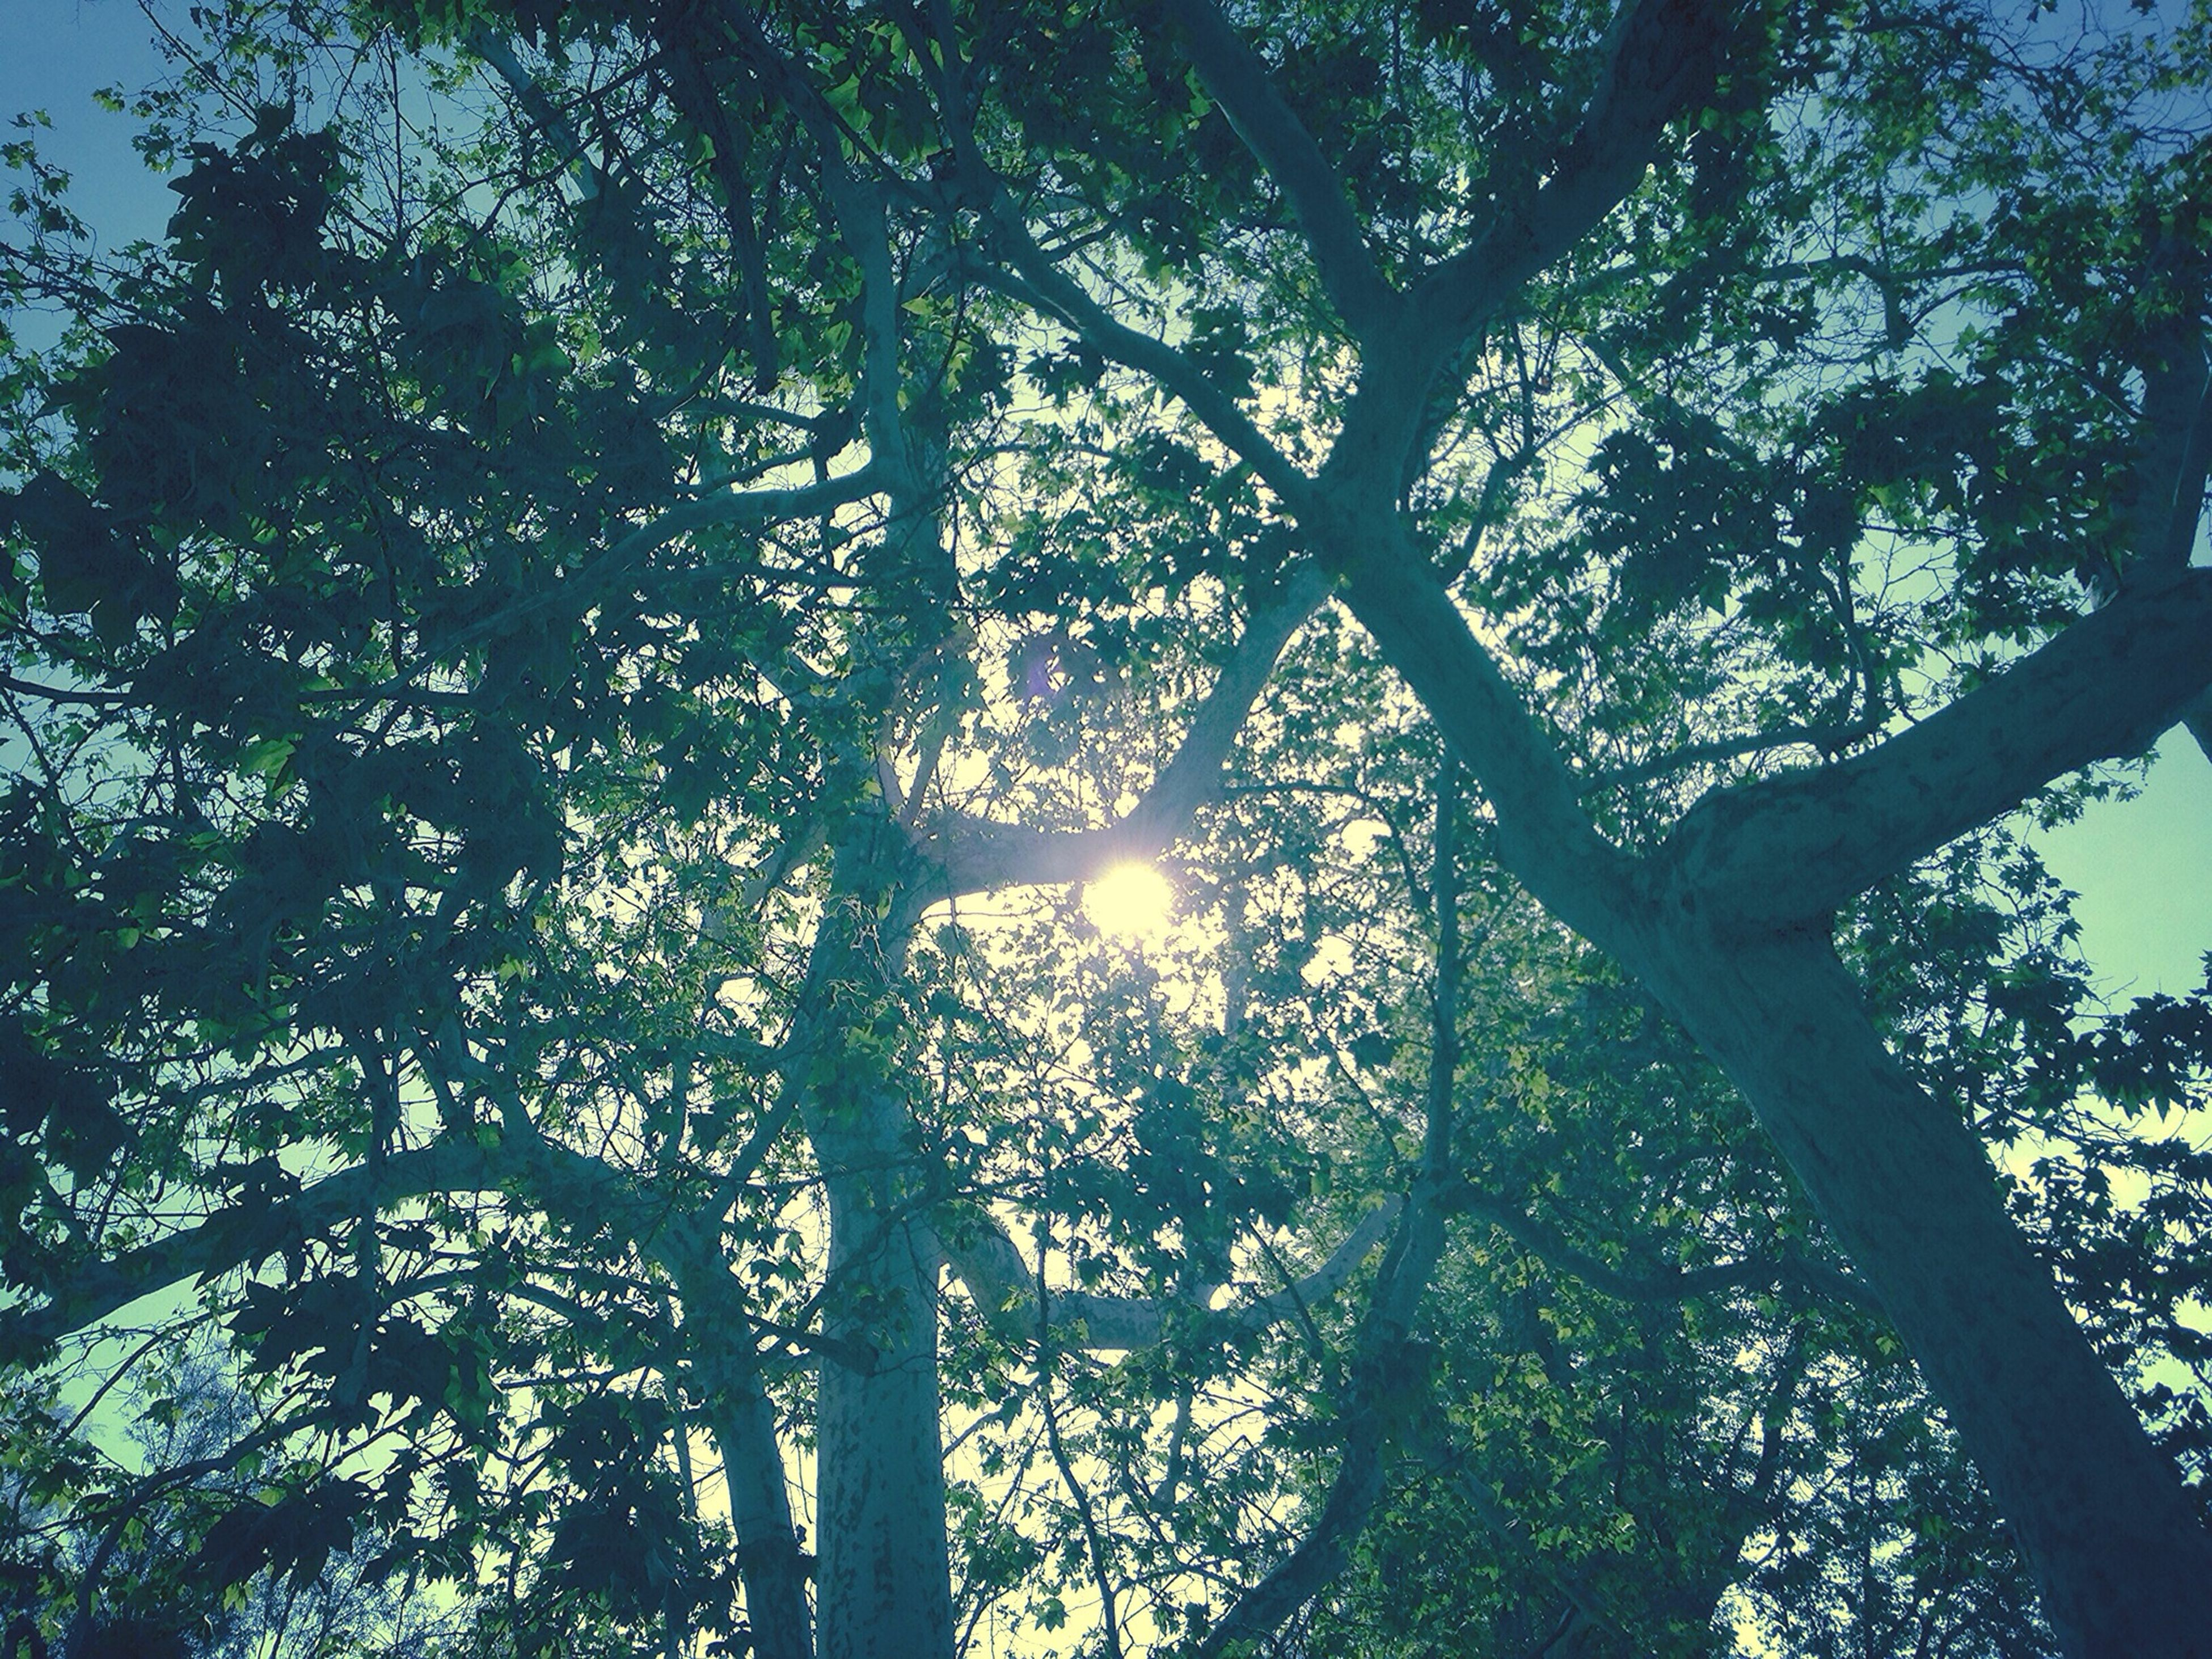 tree, low angle view, branch, growth, tree trunk, tranquility, sun, nature, sunlight, silhouette, sunbeam, beauty in nature, sky, back lit, scenics, lens flare, forest, tranquil scene, outdoors, no people